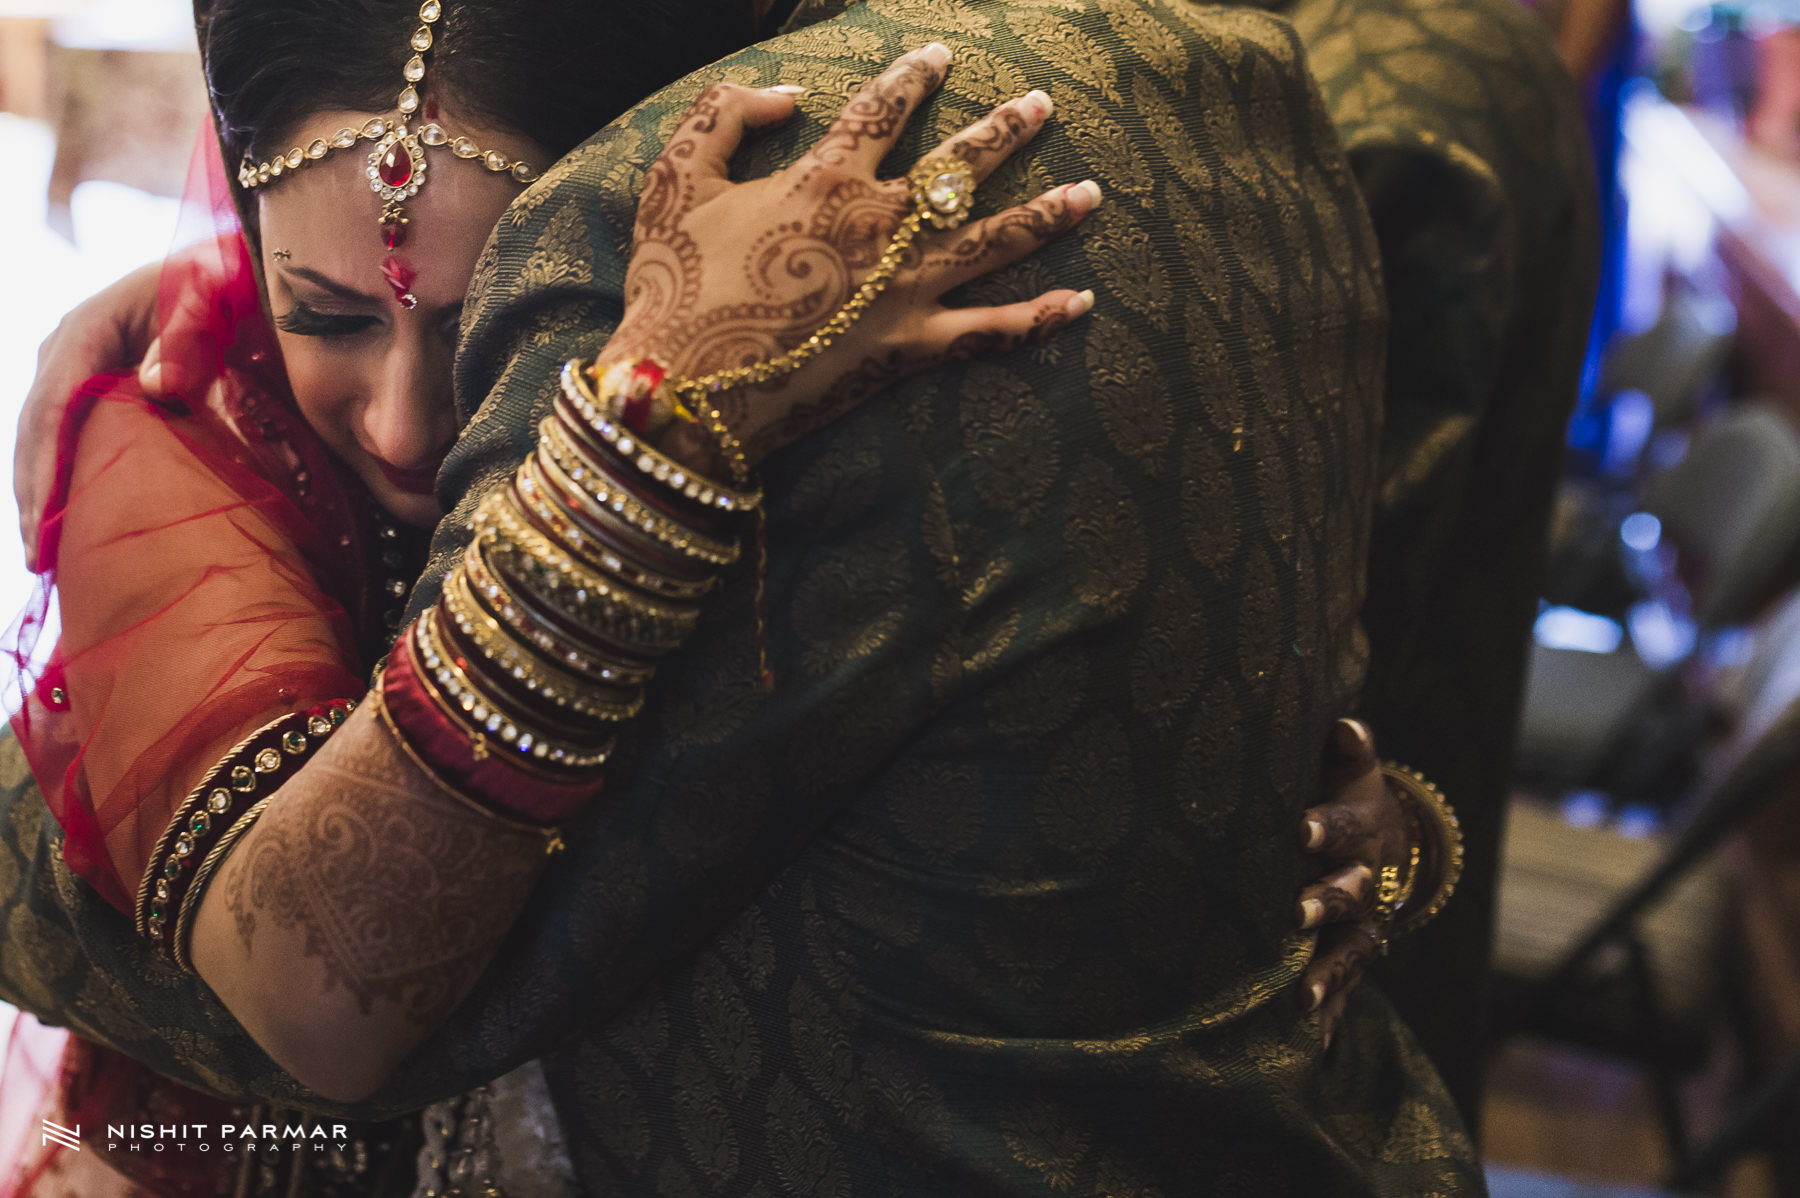 Hare Krishna Wedding - Bhaktivedanta Manor Temple - Indian Weddding - Asian Wedding - Hindu Wedding - Watford-27